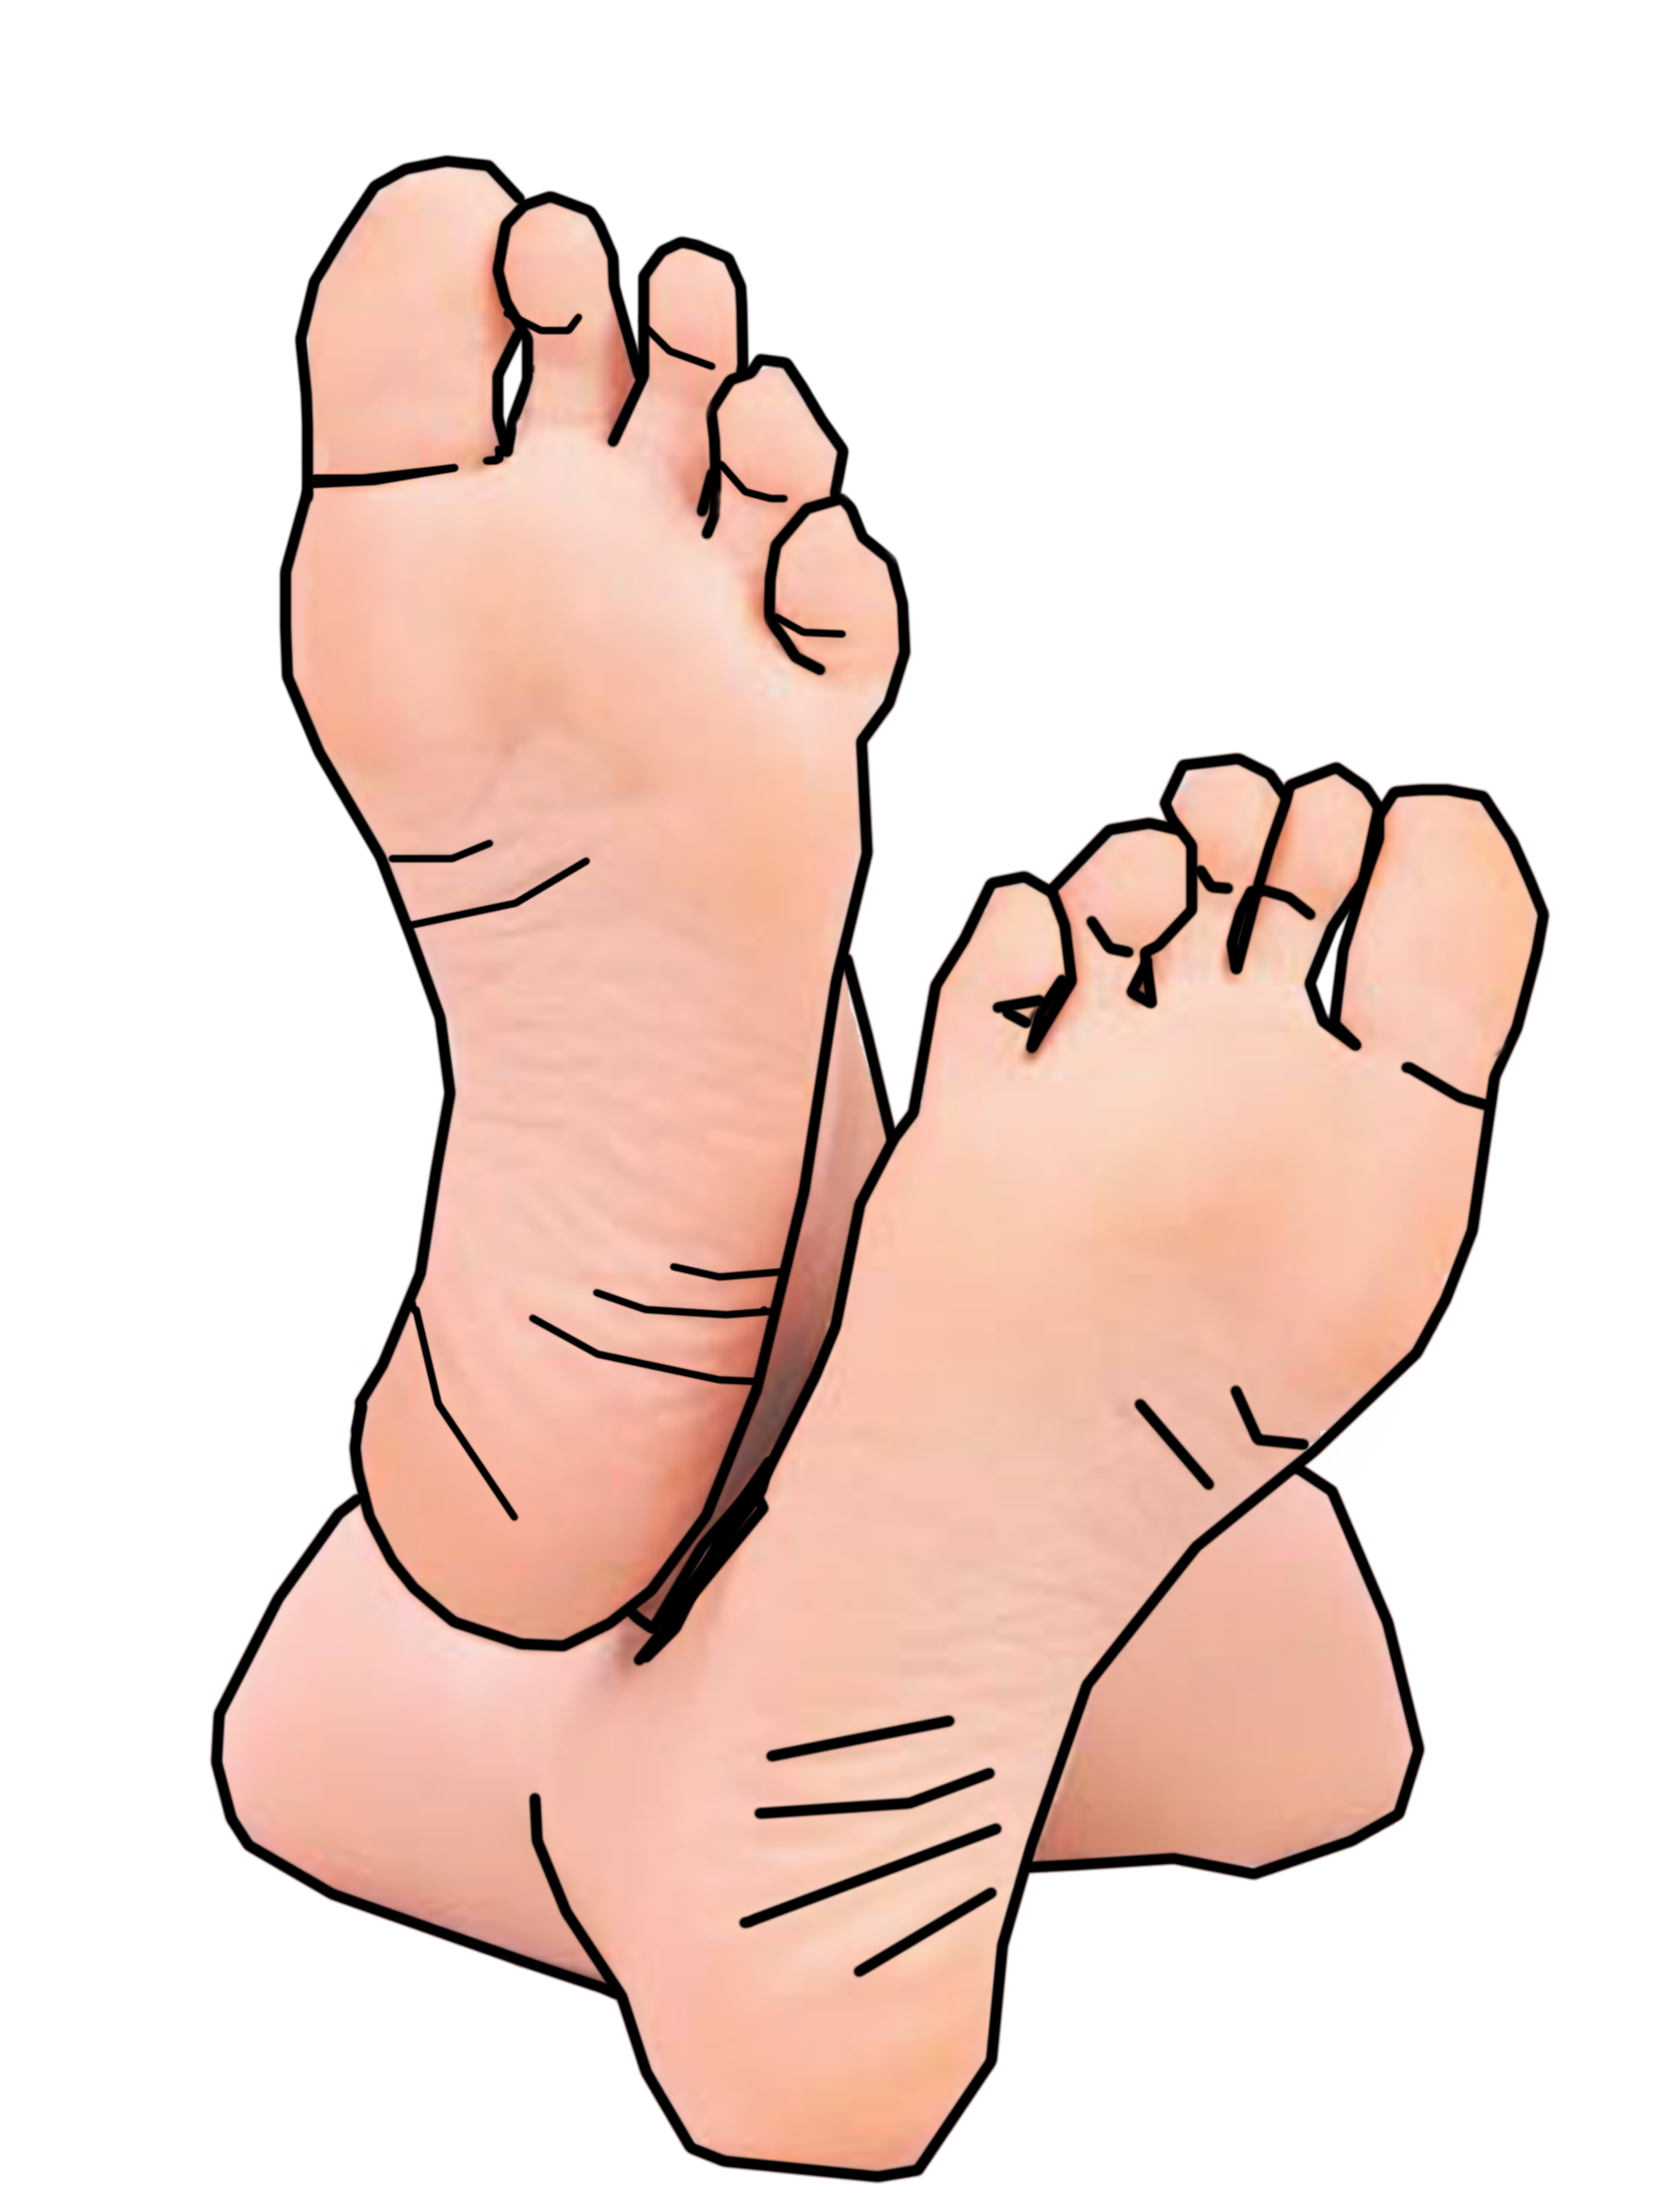 Feet outline clip art free clipart images 3 image #38068